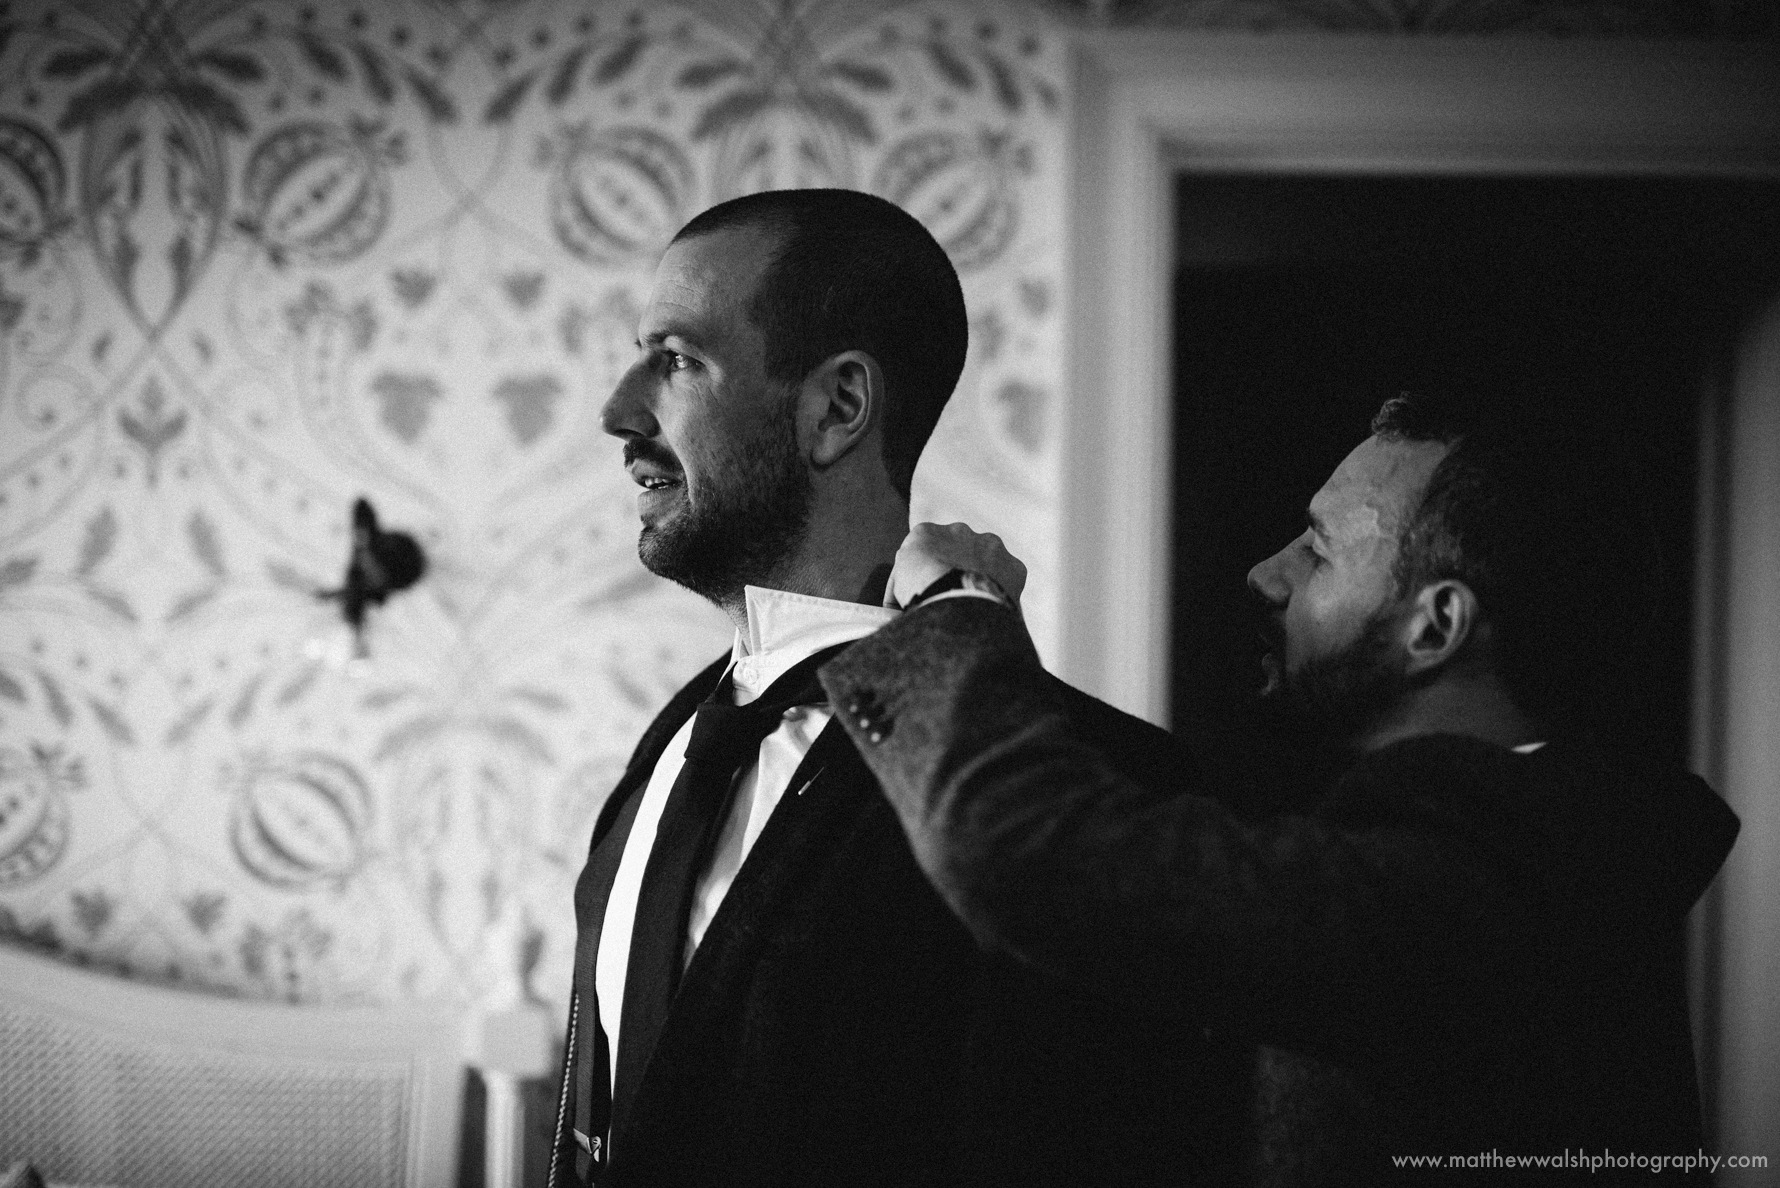 The groom assisting one of the ushers with his collar.